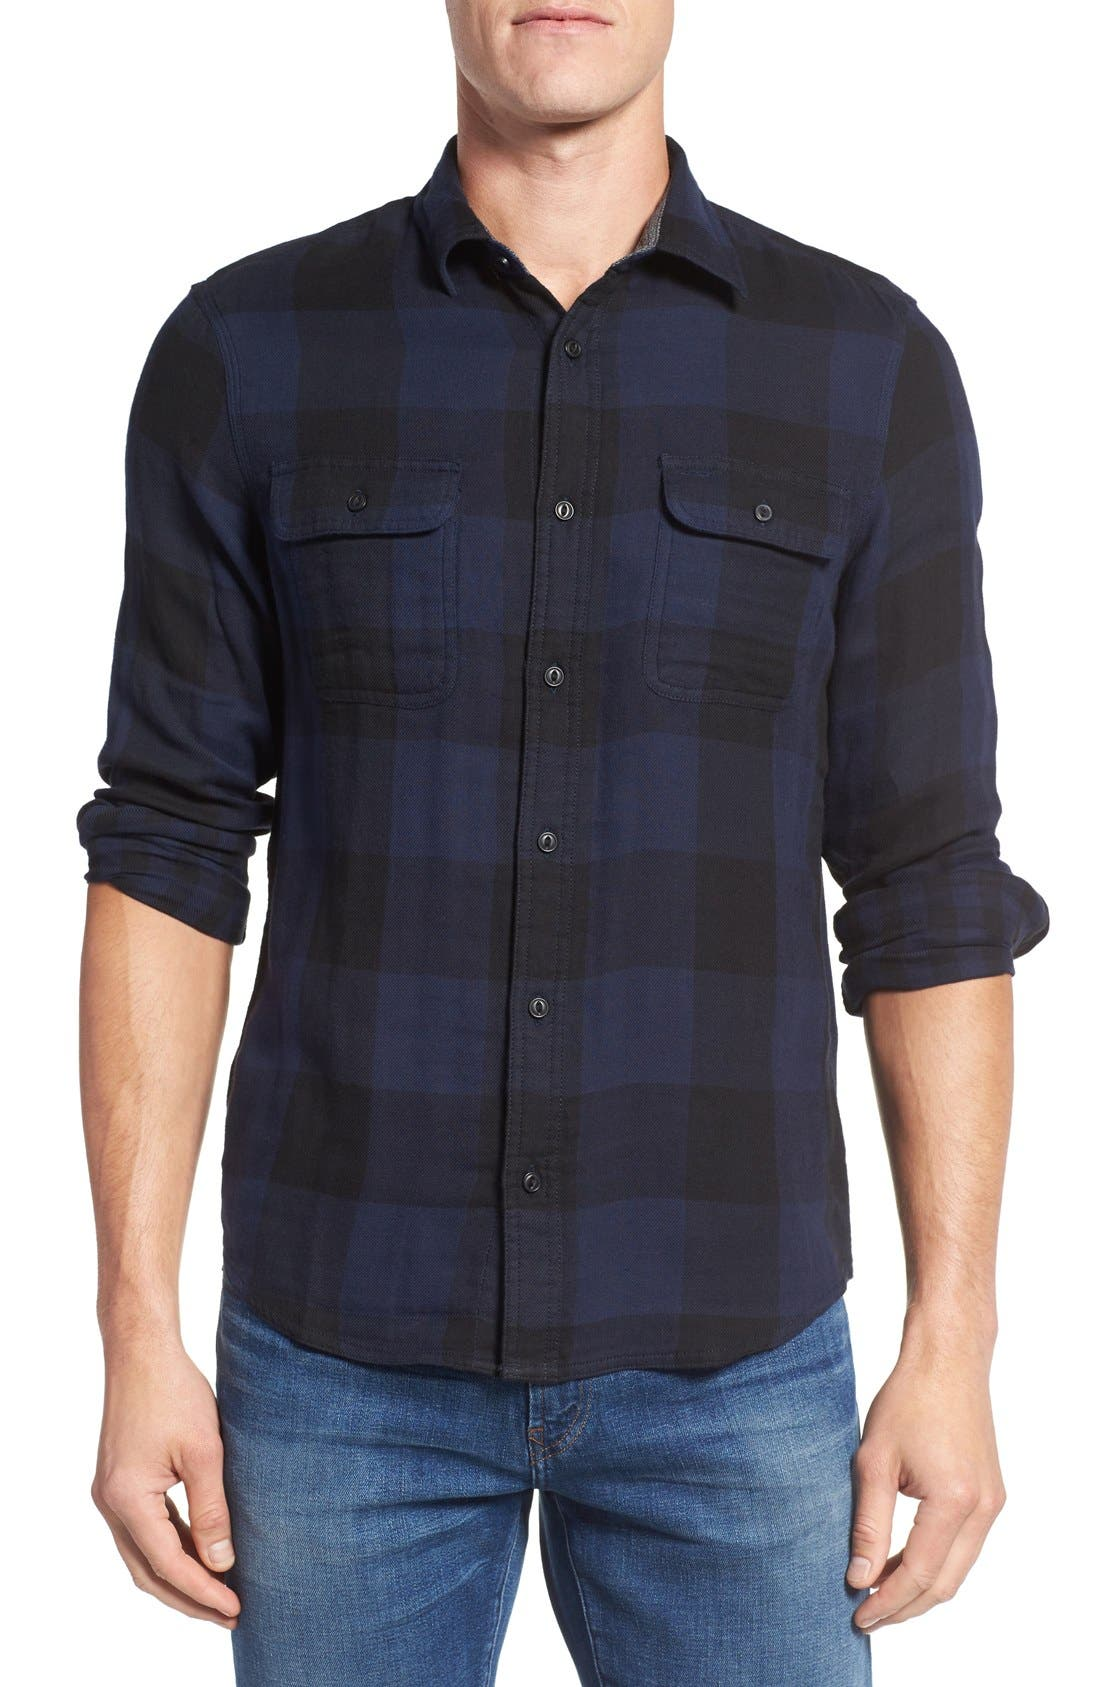 Alternate Image 1 Selected - Nordstrom Men's Shop Trim Fit Buffalo Plaid Flannel Shirt Jacket